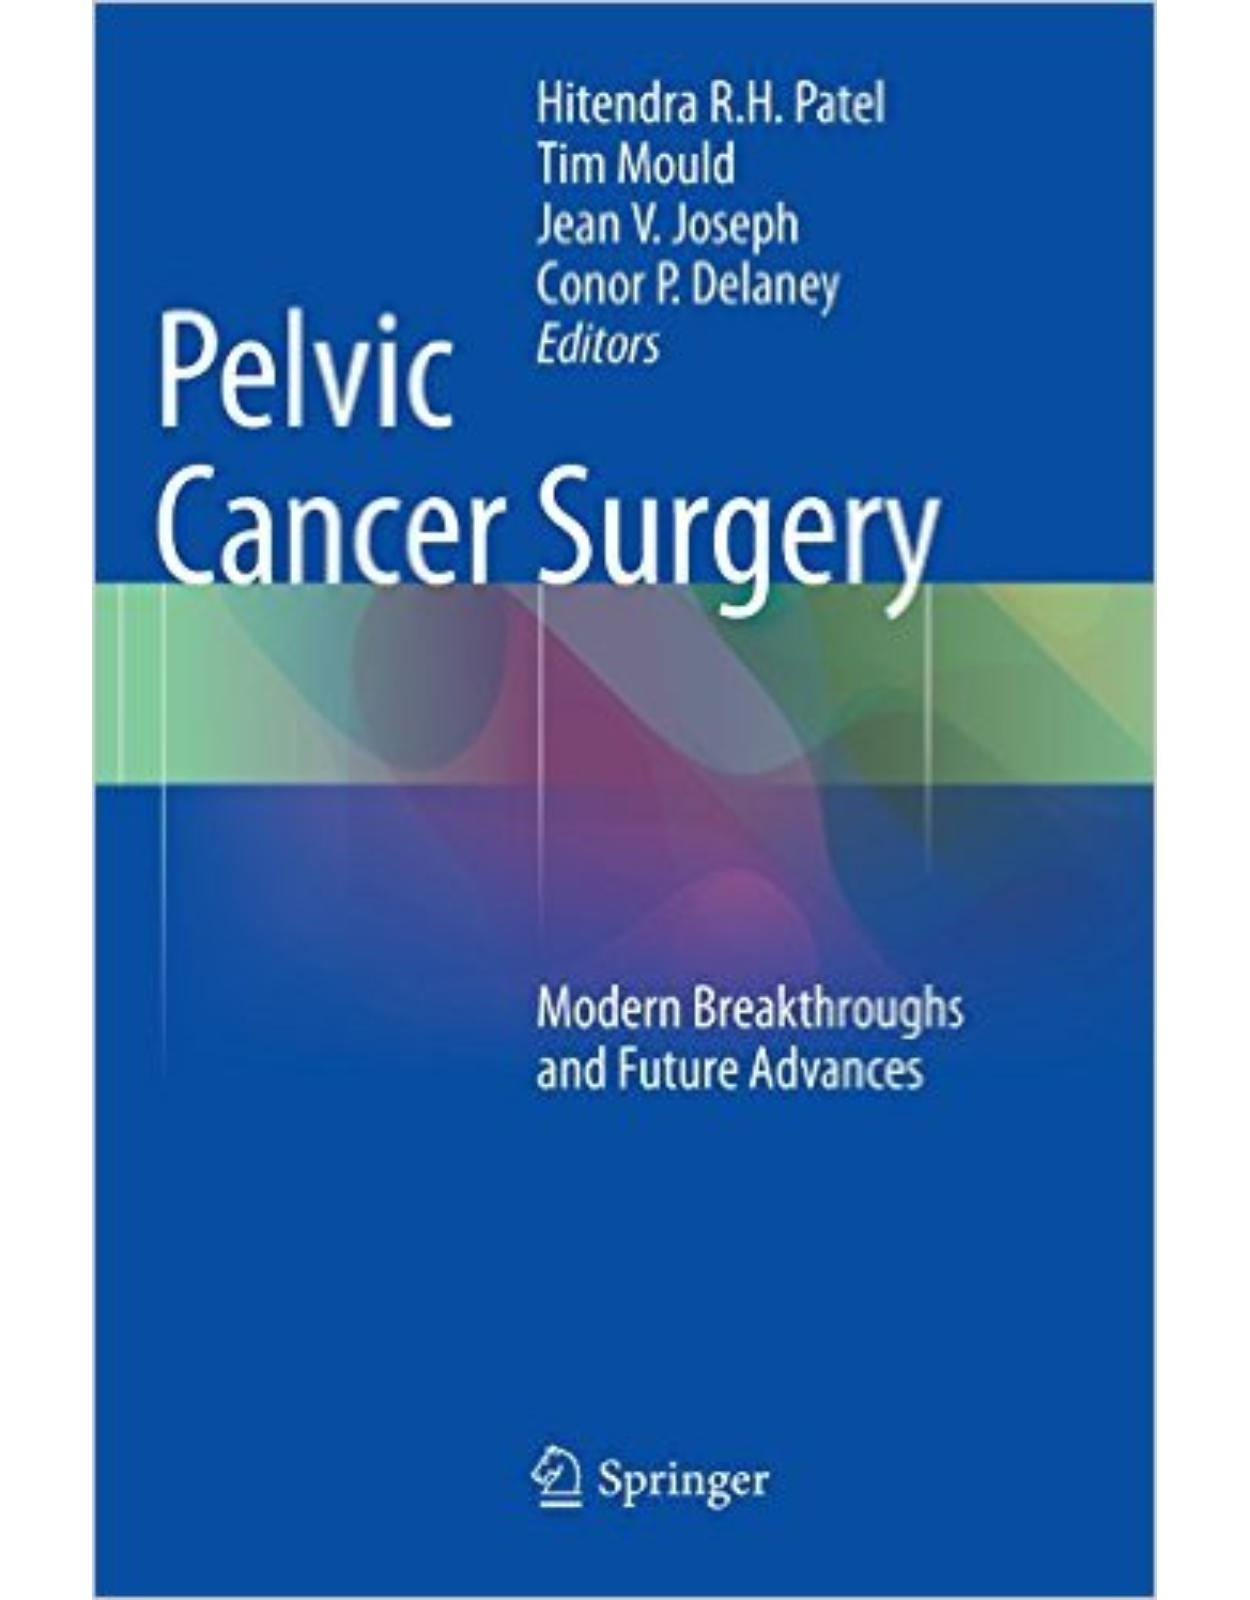 Pelvic Cancer Surgery: Modern Breakthroughs and Future Advances 2015th Edition